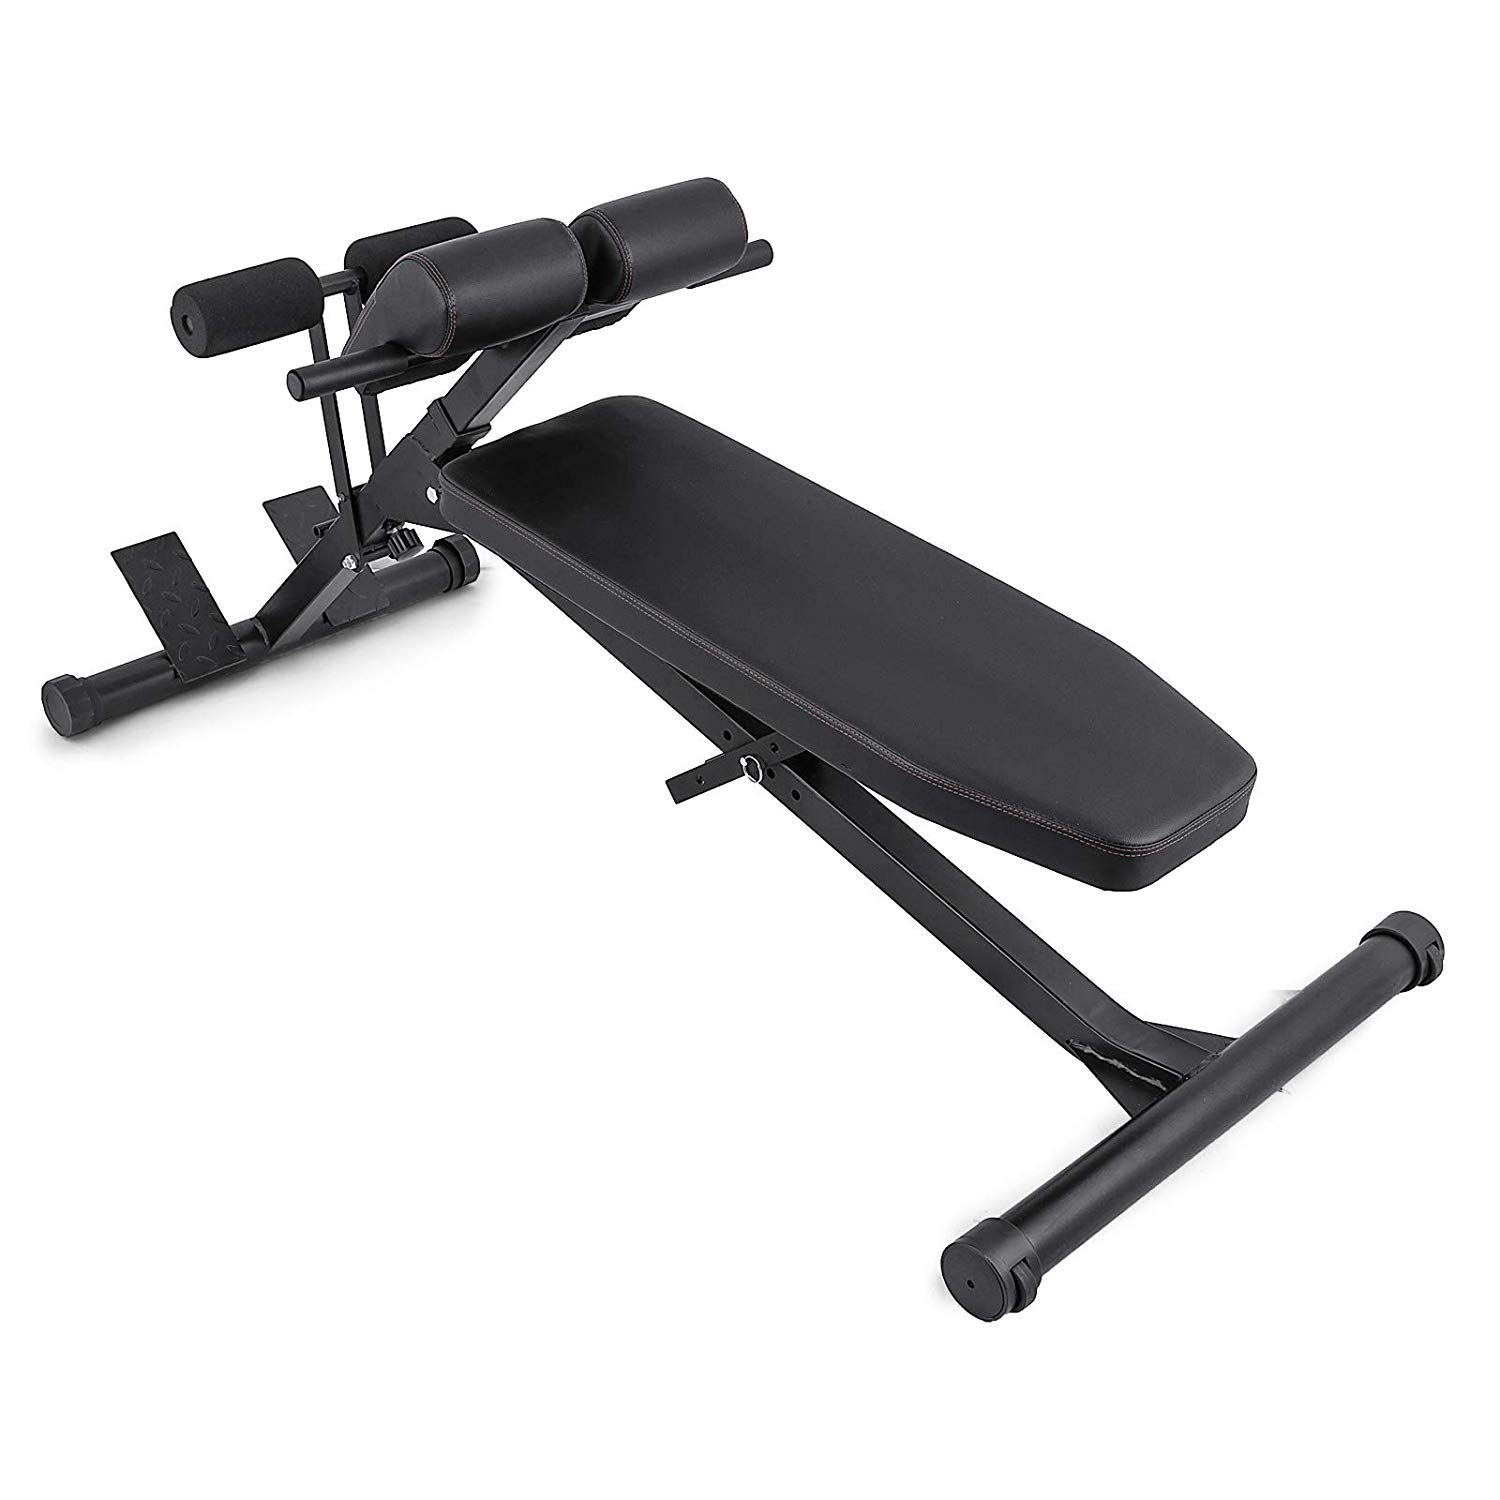 Popsport 660LBS Extension Bench Multi-Workout Back Extension Bench Adjustable Fitness Abdominal Hyper Bench Sit Up Bench for Commercial and Home use